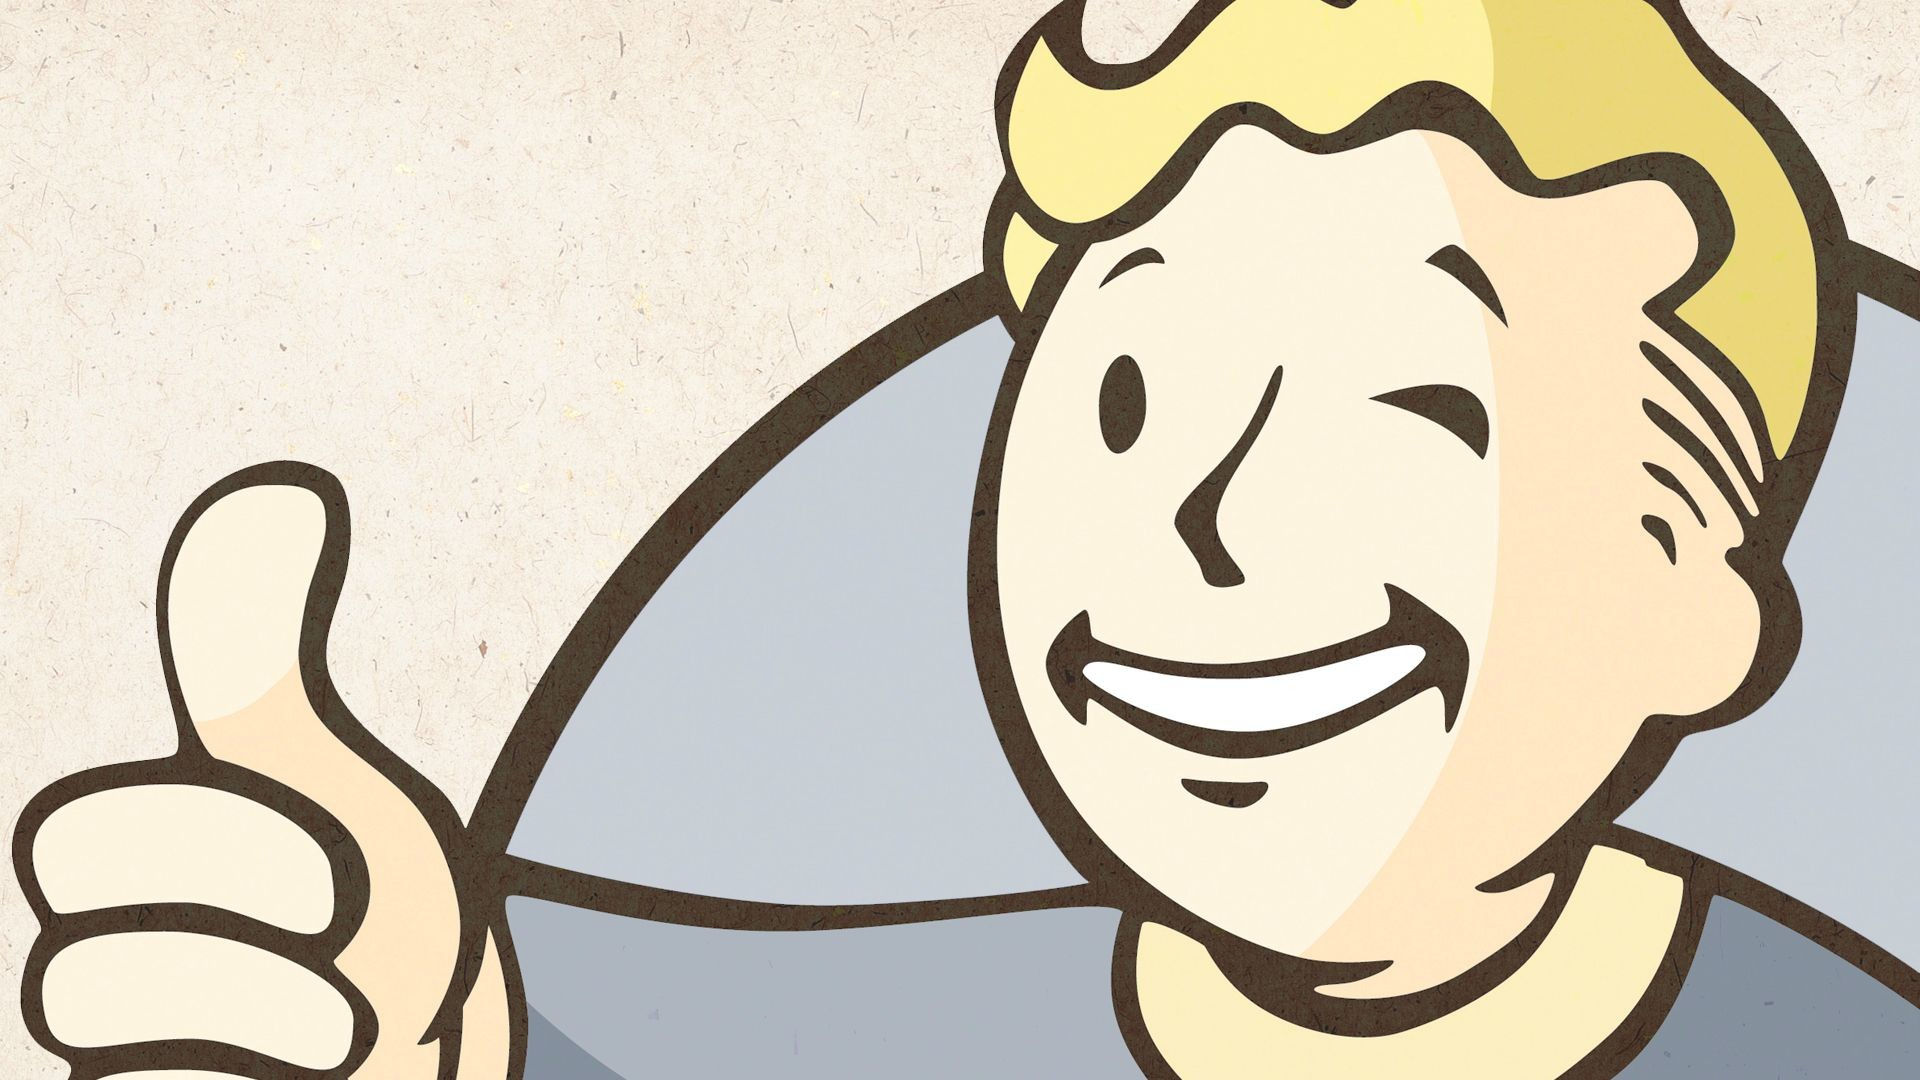 1920x1080 Fallout 4 - Welcome Home wallpaper  (no text)